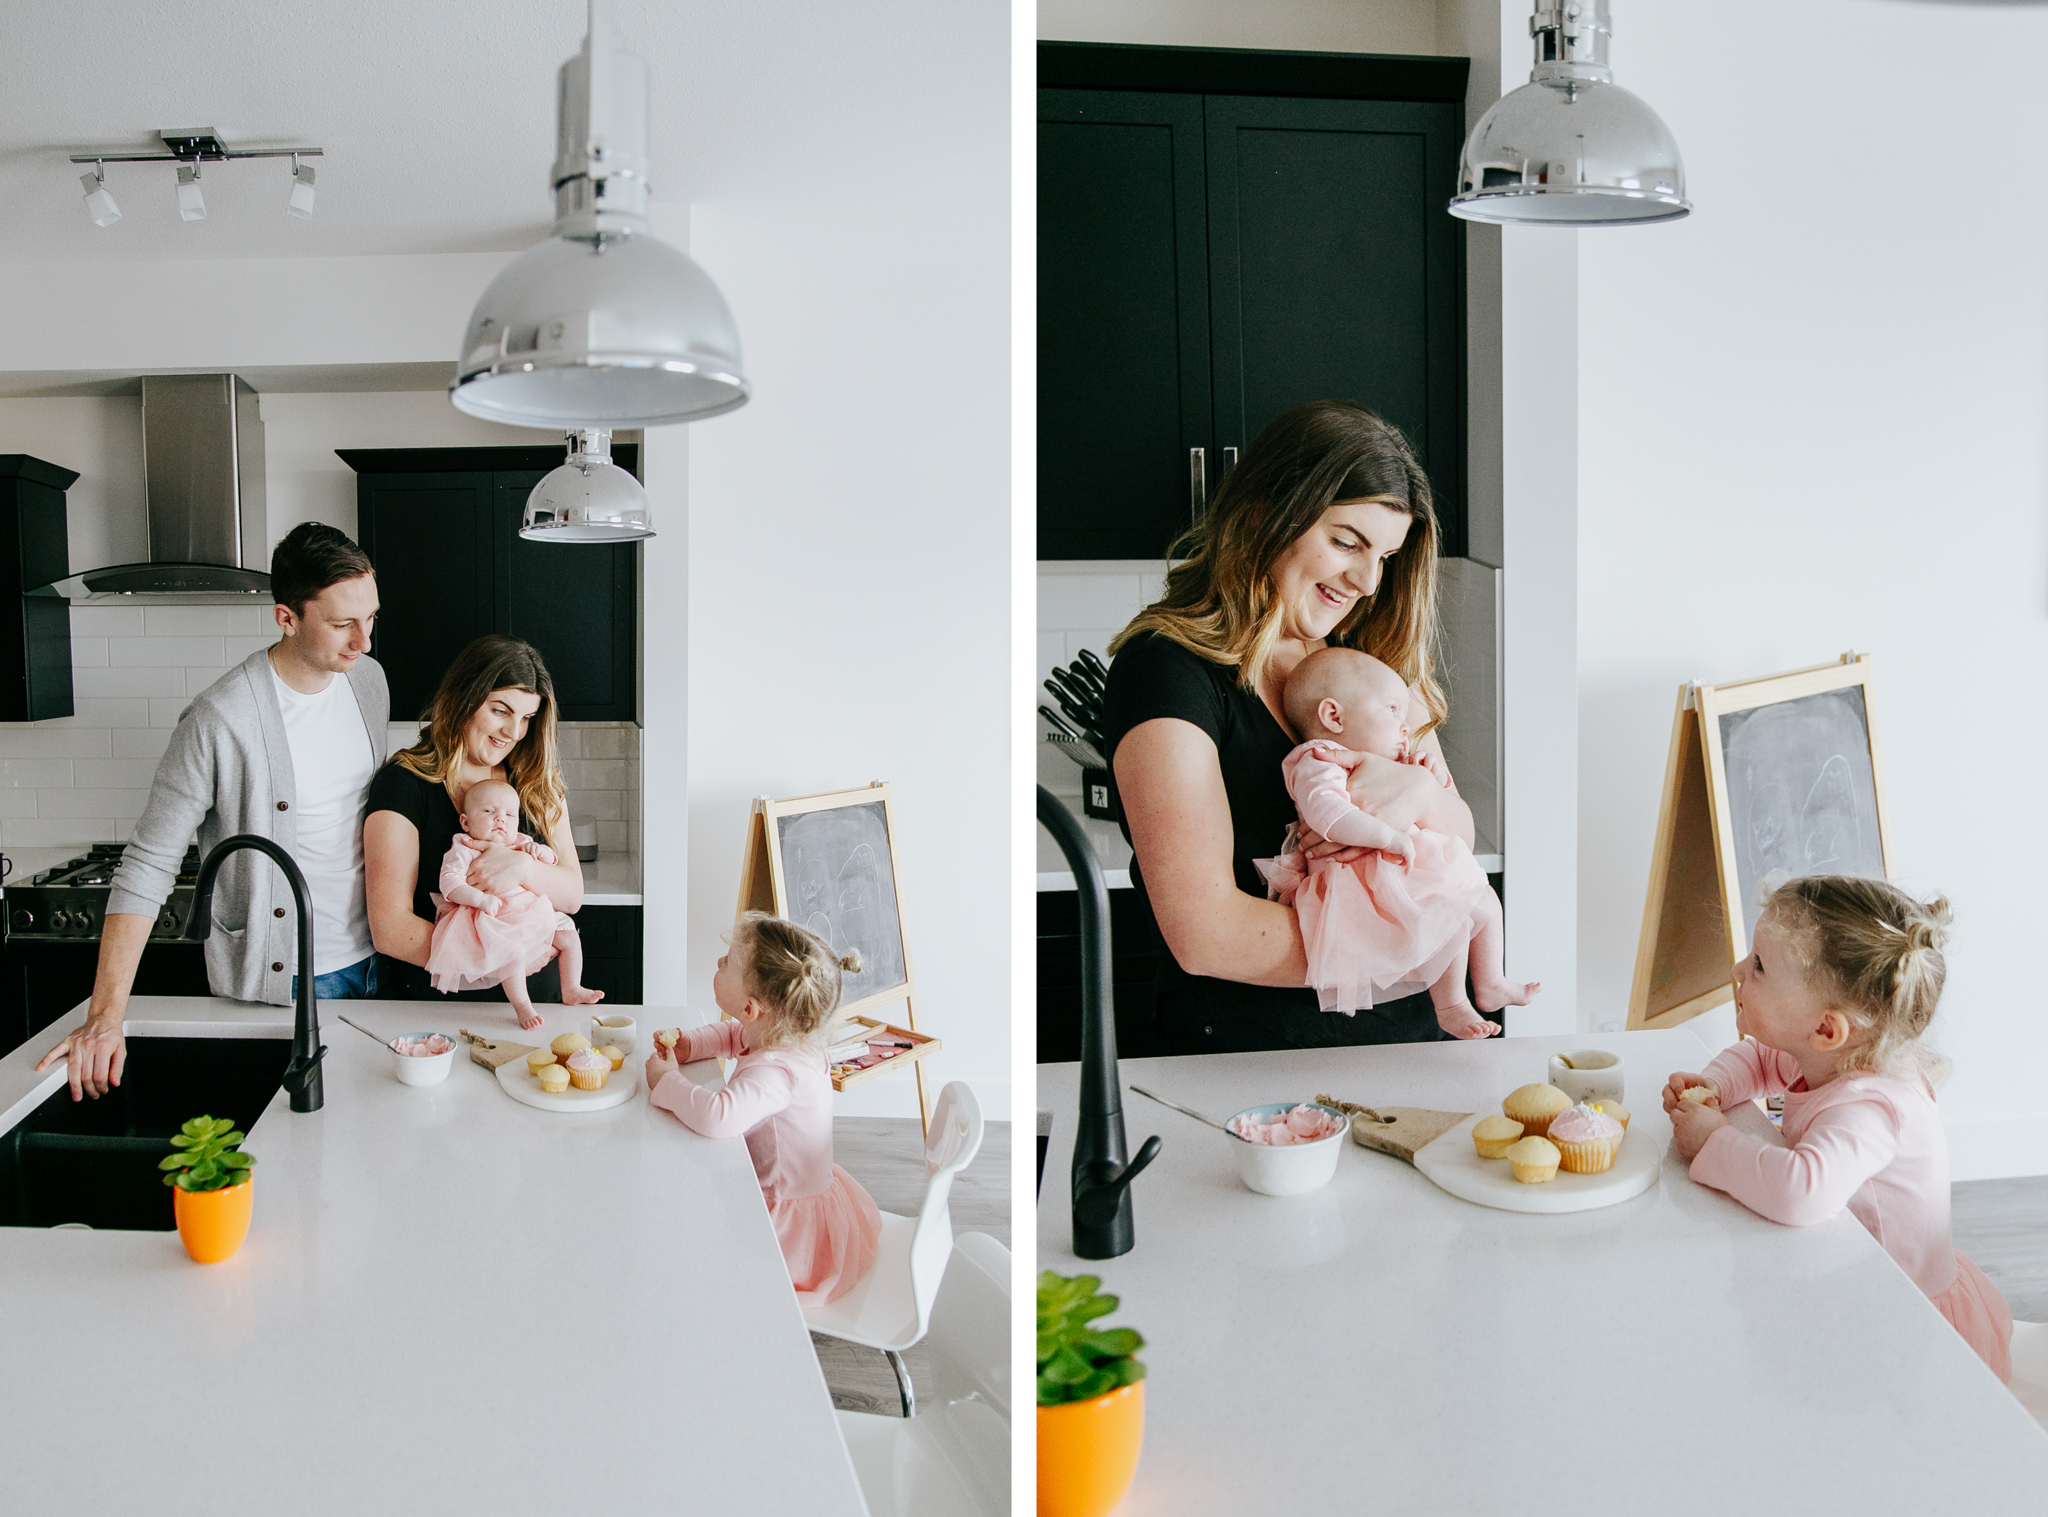 lethbridge-photographer-love-and-be-loved-photography-thornborough-family-lifestyle-session-image-picture-photo-117.jpg